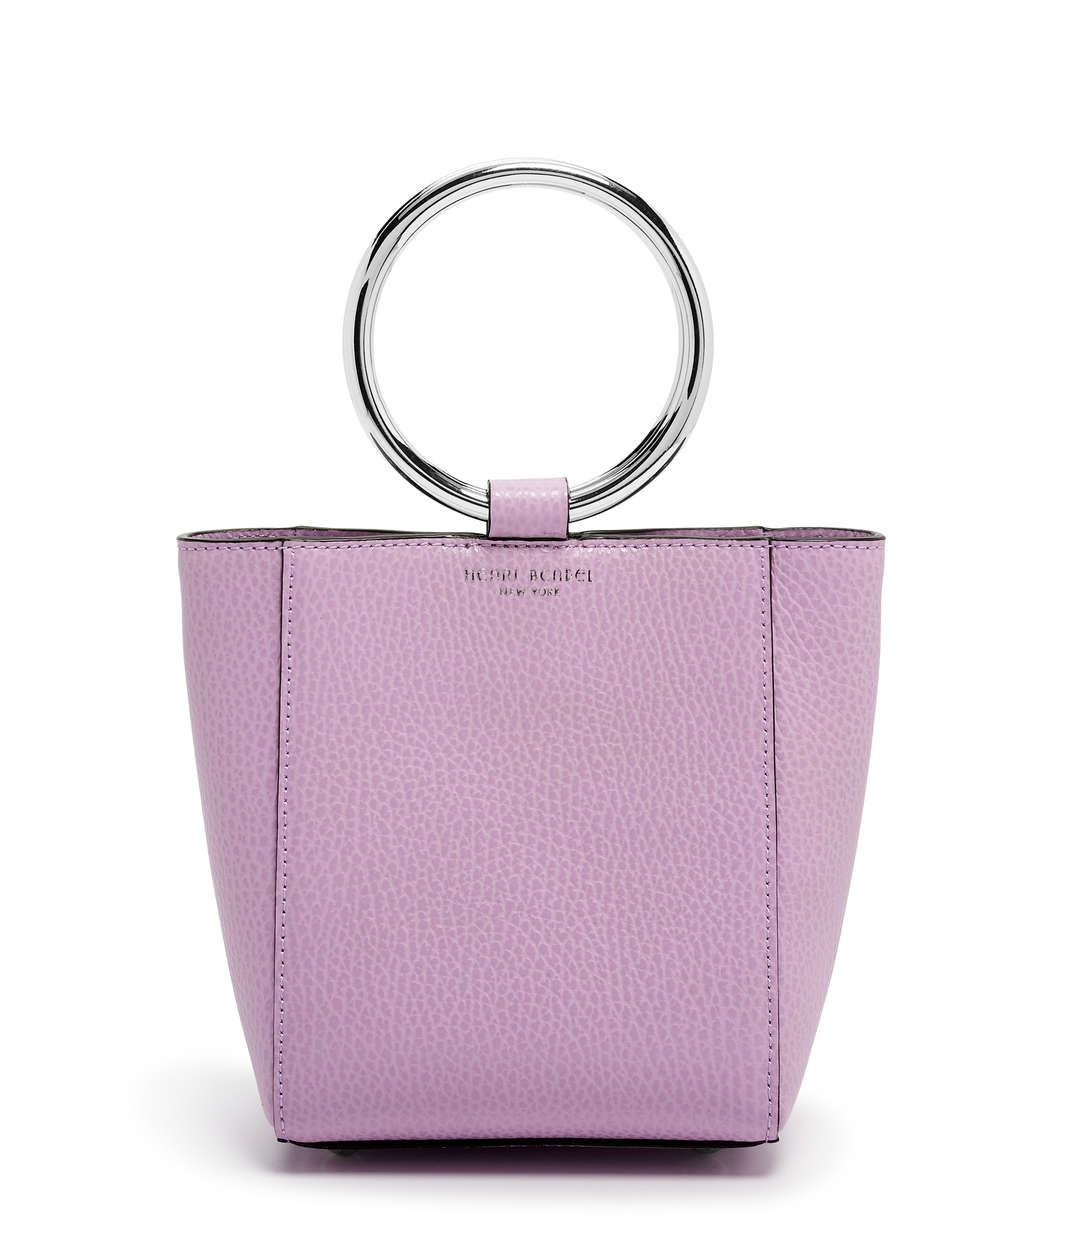 a931440d8aa5 The Marquis Micro Tote handbag may be teeny in size